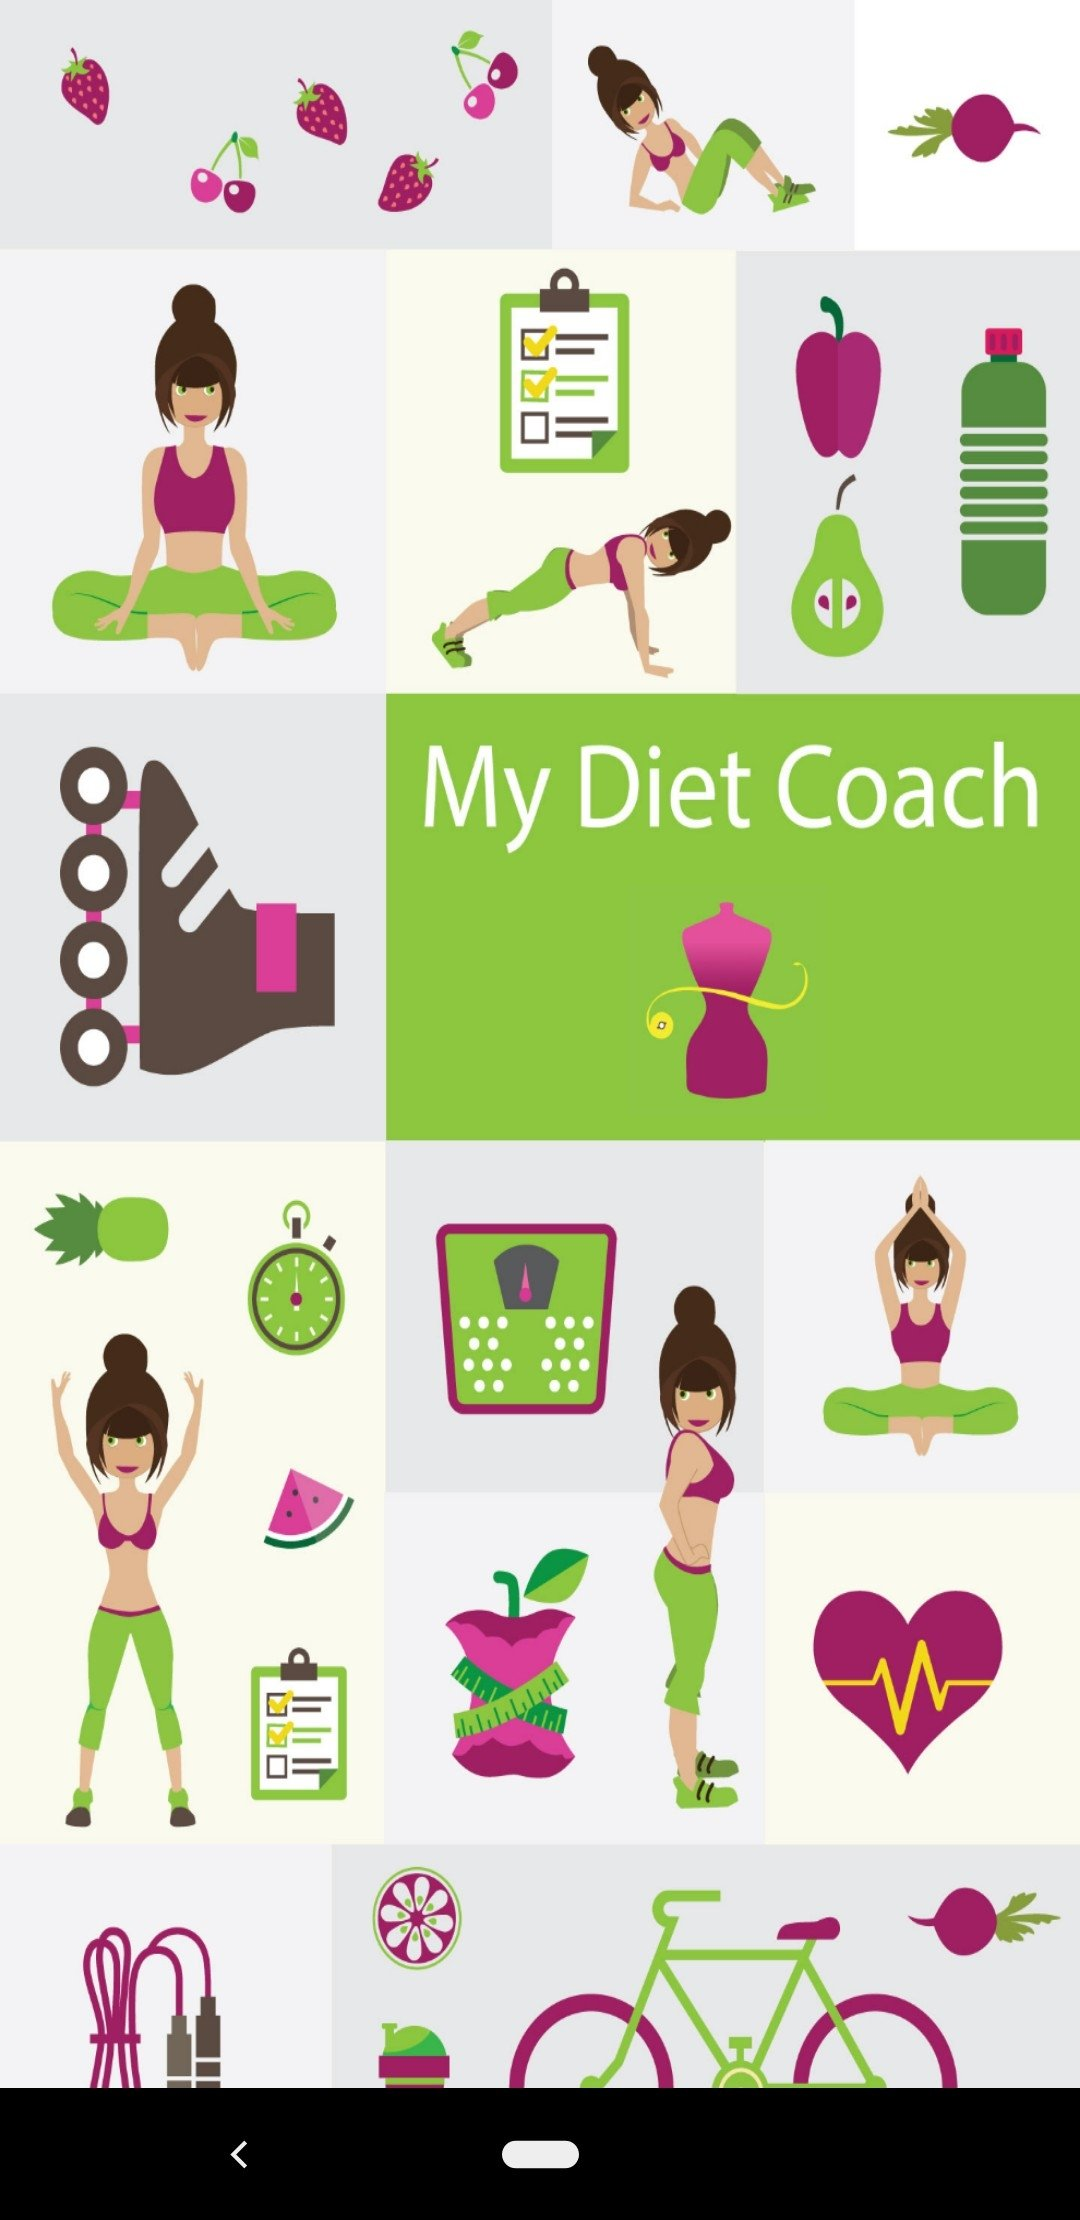 My Diet Coach Android image 7